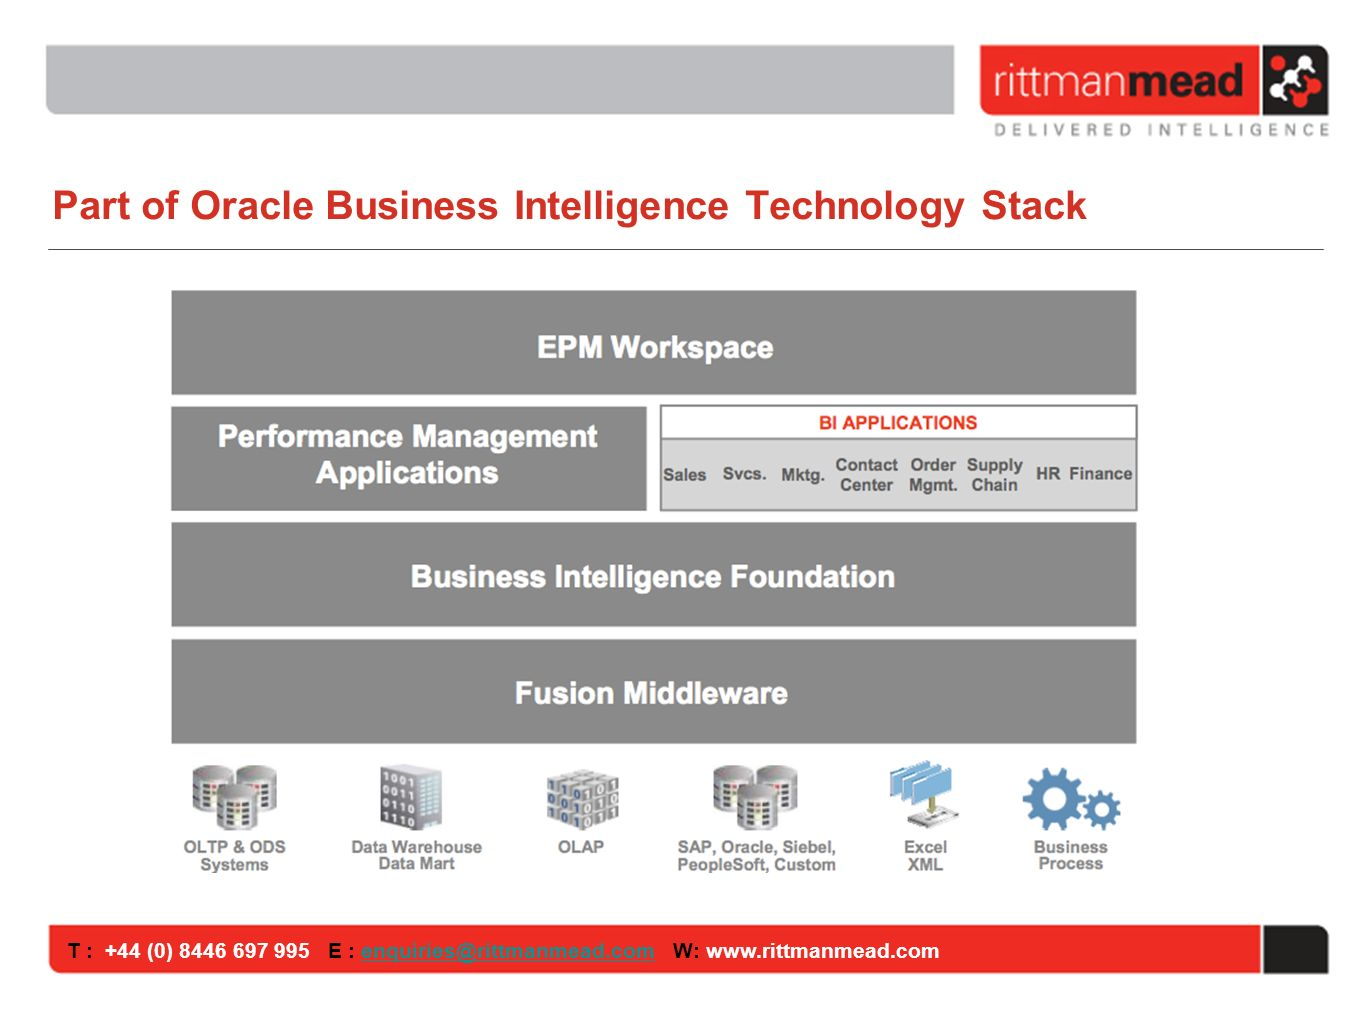 T : +44 (0) 8446 697 995 E : enquiries@rittmanmead.com W: www.rittmanmead.comenquiries@rittmanmead.com Oracle Data Integrator A future release of the Oracle BI Applications will support ODI as the ETL tool Initially EBS to Oracle only, future releases will support all sources/targets Oracle heterogeneous ETL tool Acquired through Sunopsis Acquisition ELT approach Part of Oracle Fusion Middleware Customers can adopt either Informatica or ODI, Informatica will continue to be supported